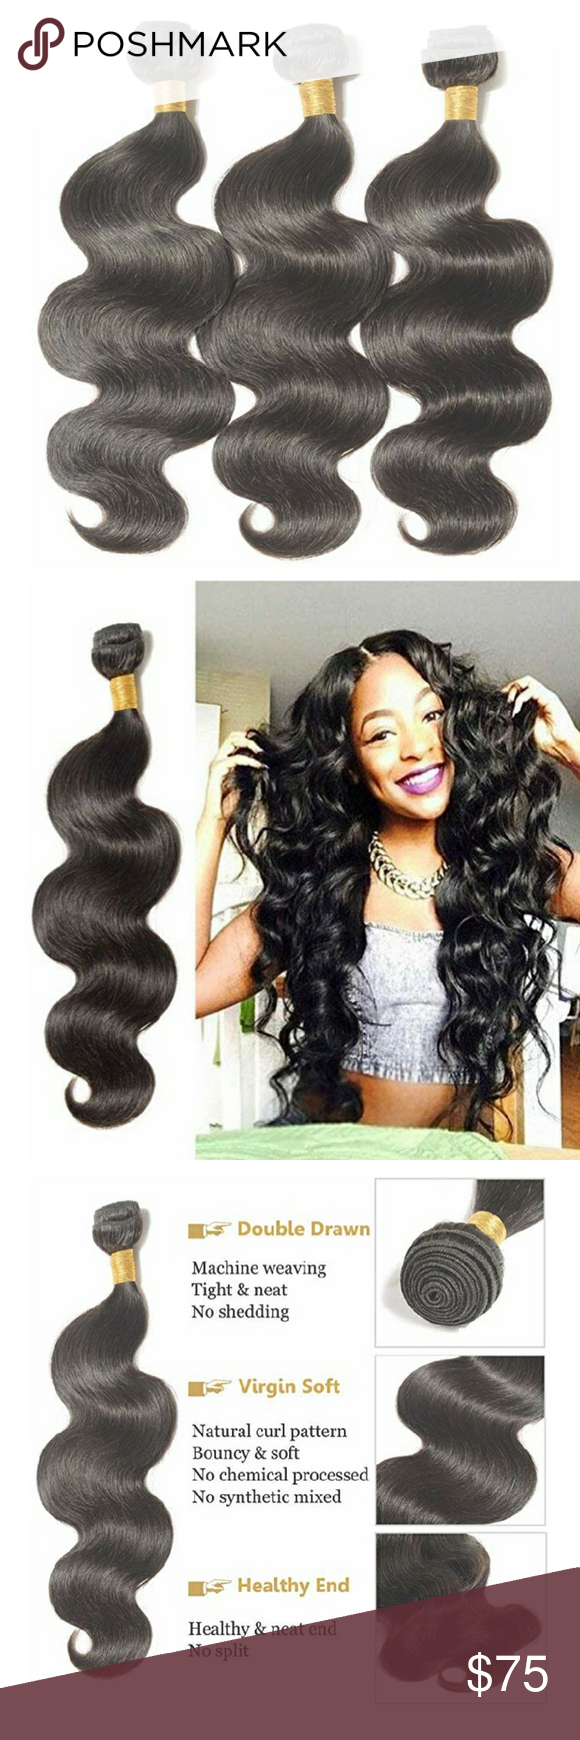 100% Human Hair 3 Bundles 18 inches body wave Price is for all 3 bundles!!!! Brazilian body wave 100% human hair weave can be sewn in, clipped in, glued in to create longer, fuller hair. You can bleach, dye, straighten and restyle the hair bundles as you wish. The hair is in its natural state with its cuticles running in the same direction and in tact. Brazilian Accessories Hair Accessories #brazilianstraightening